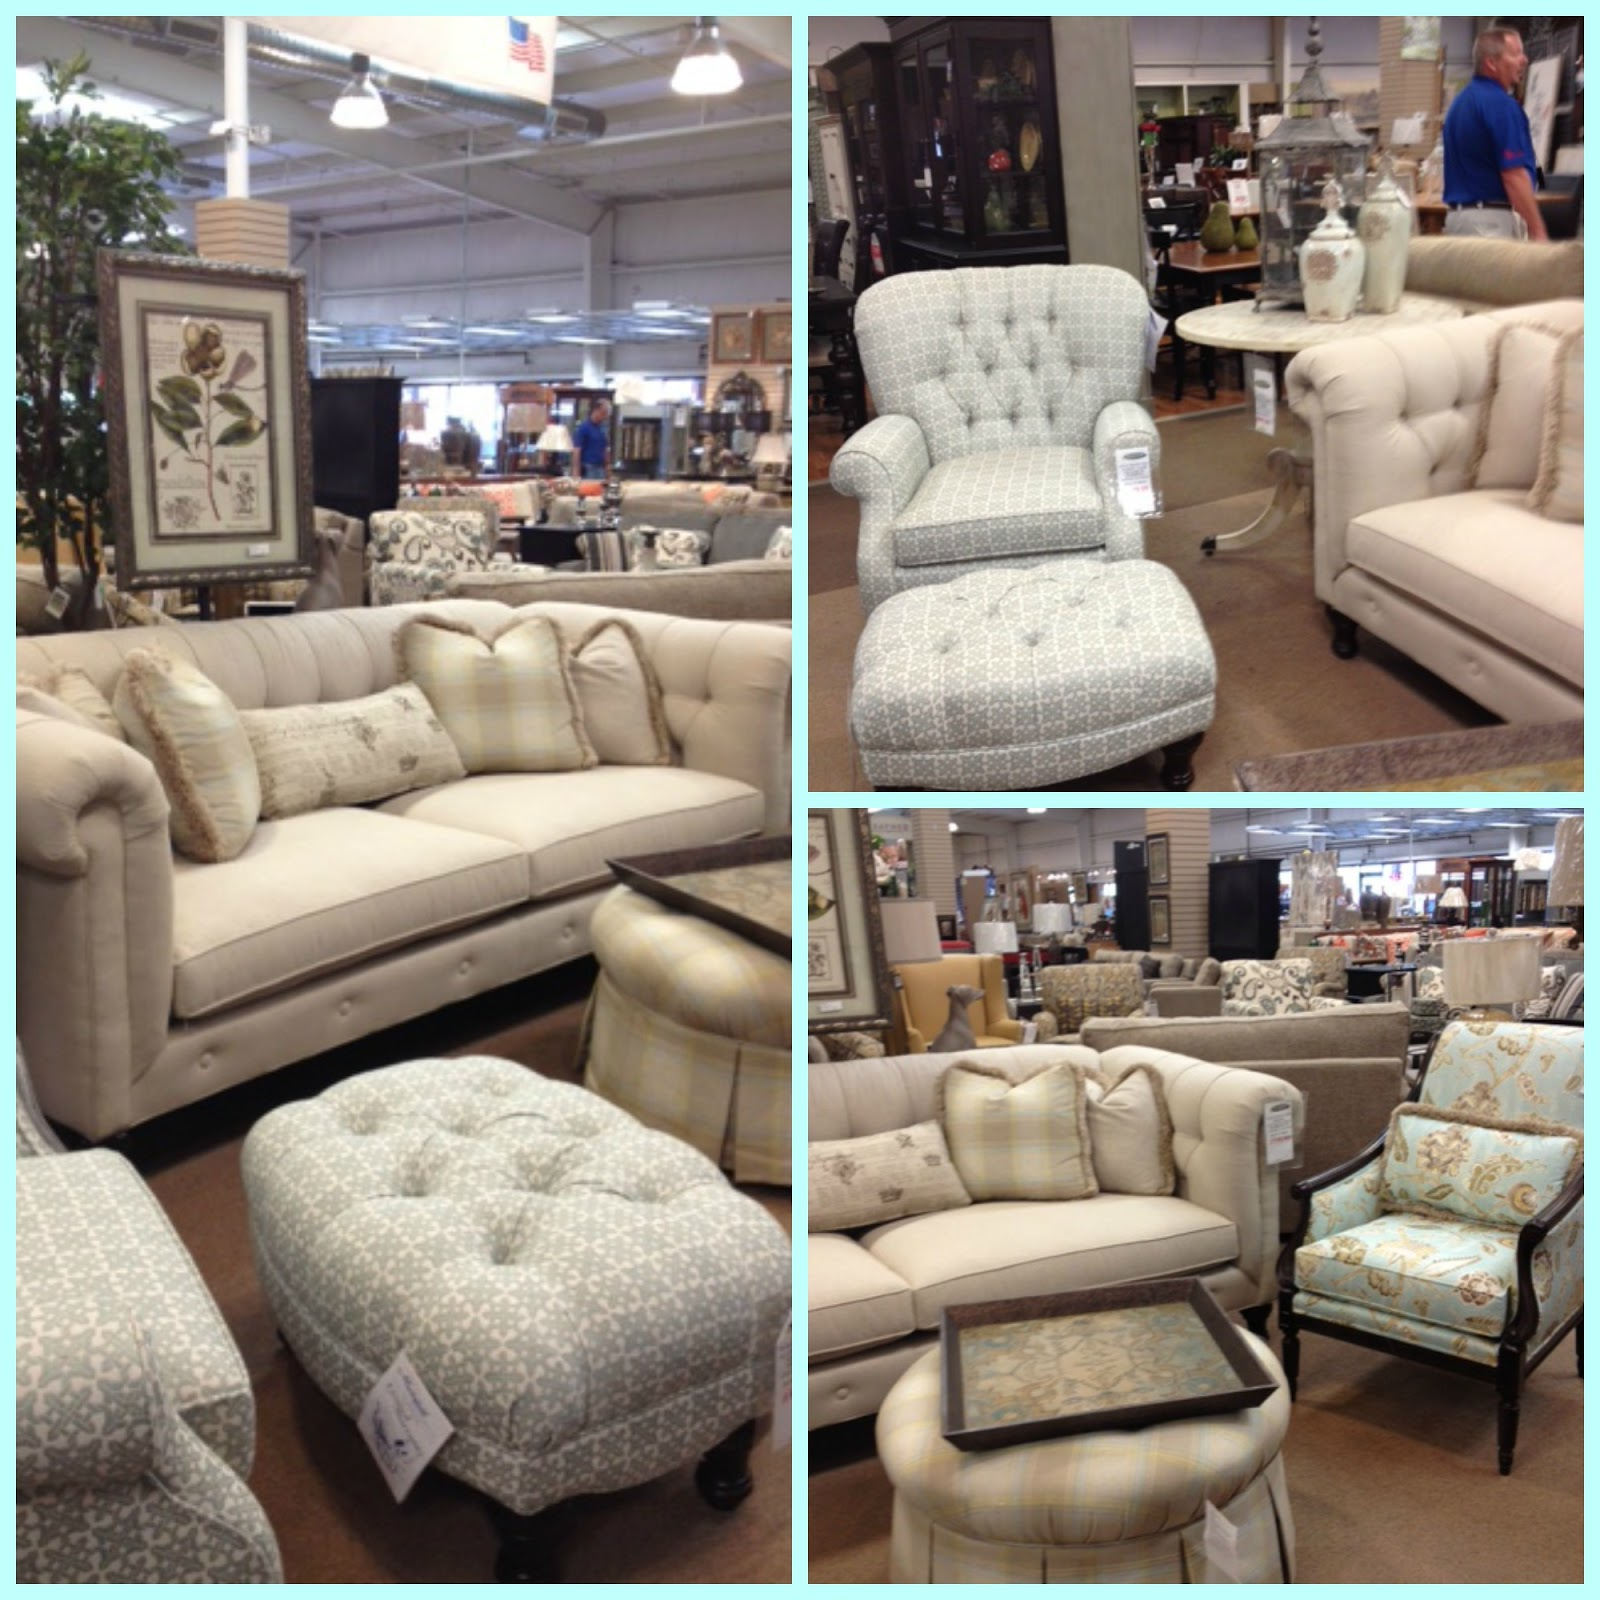 Furniture Store Outlet: Furniture Collections Outlet